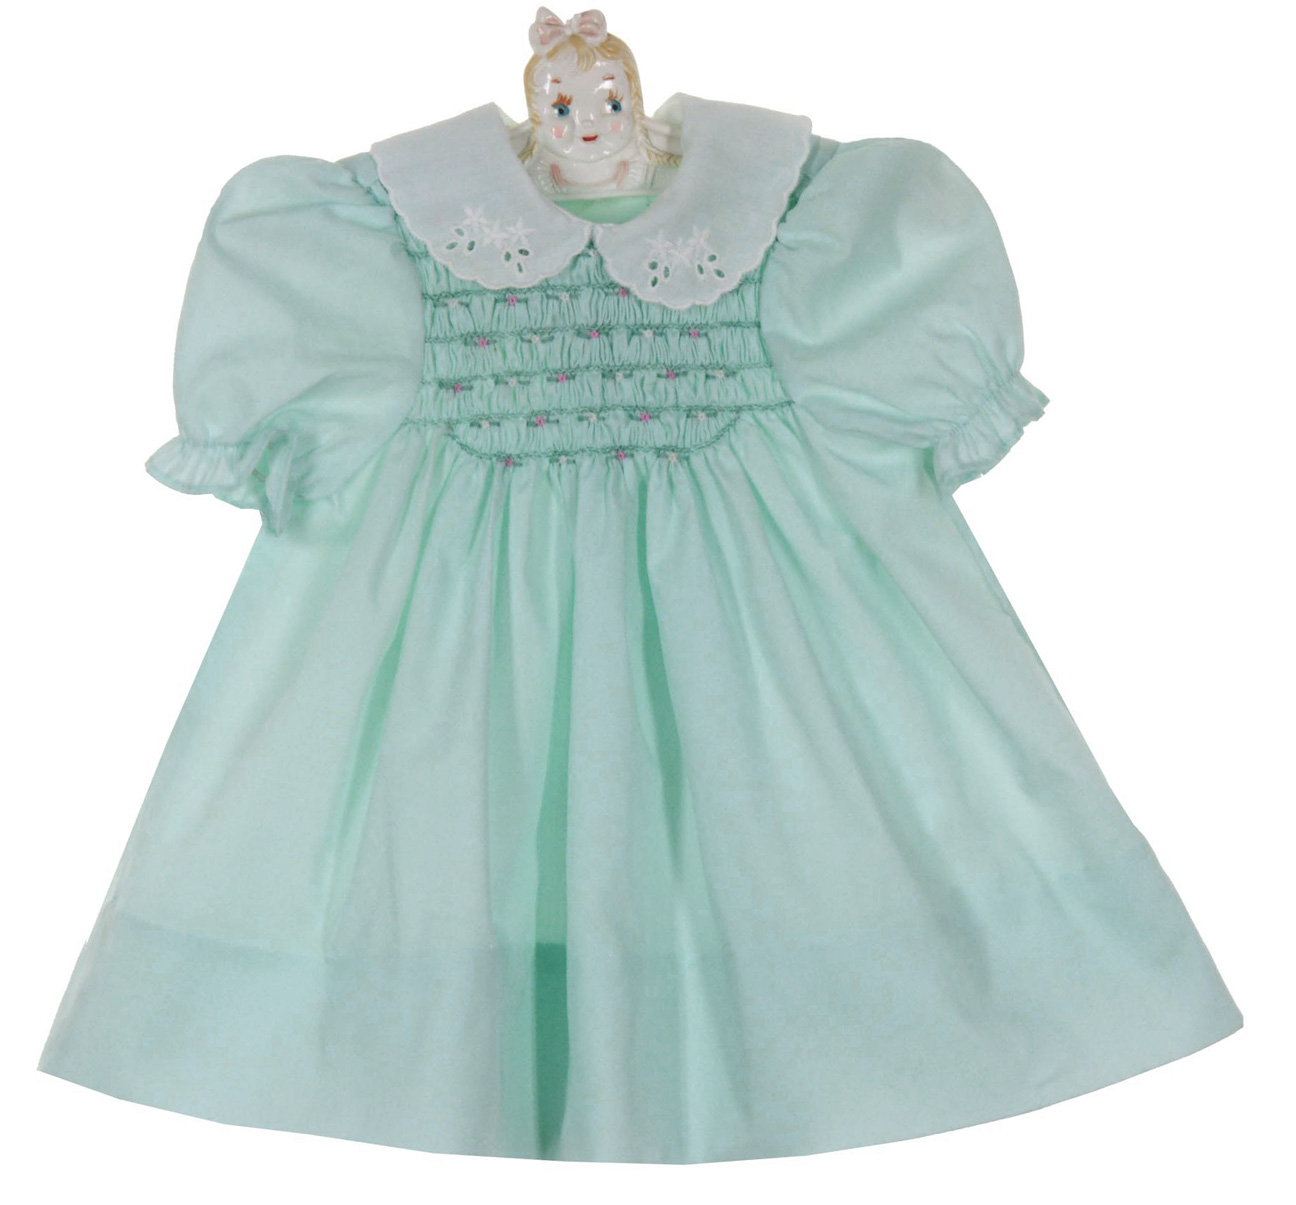 74d69c0eb Polly Flinders Pale Green Smocked Dress with White Eyelet Collar